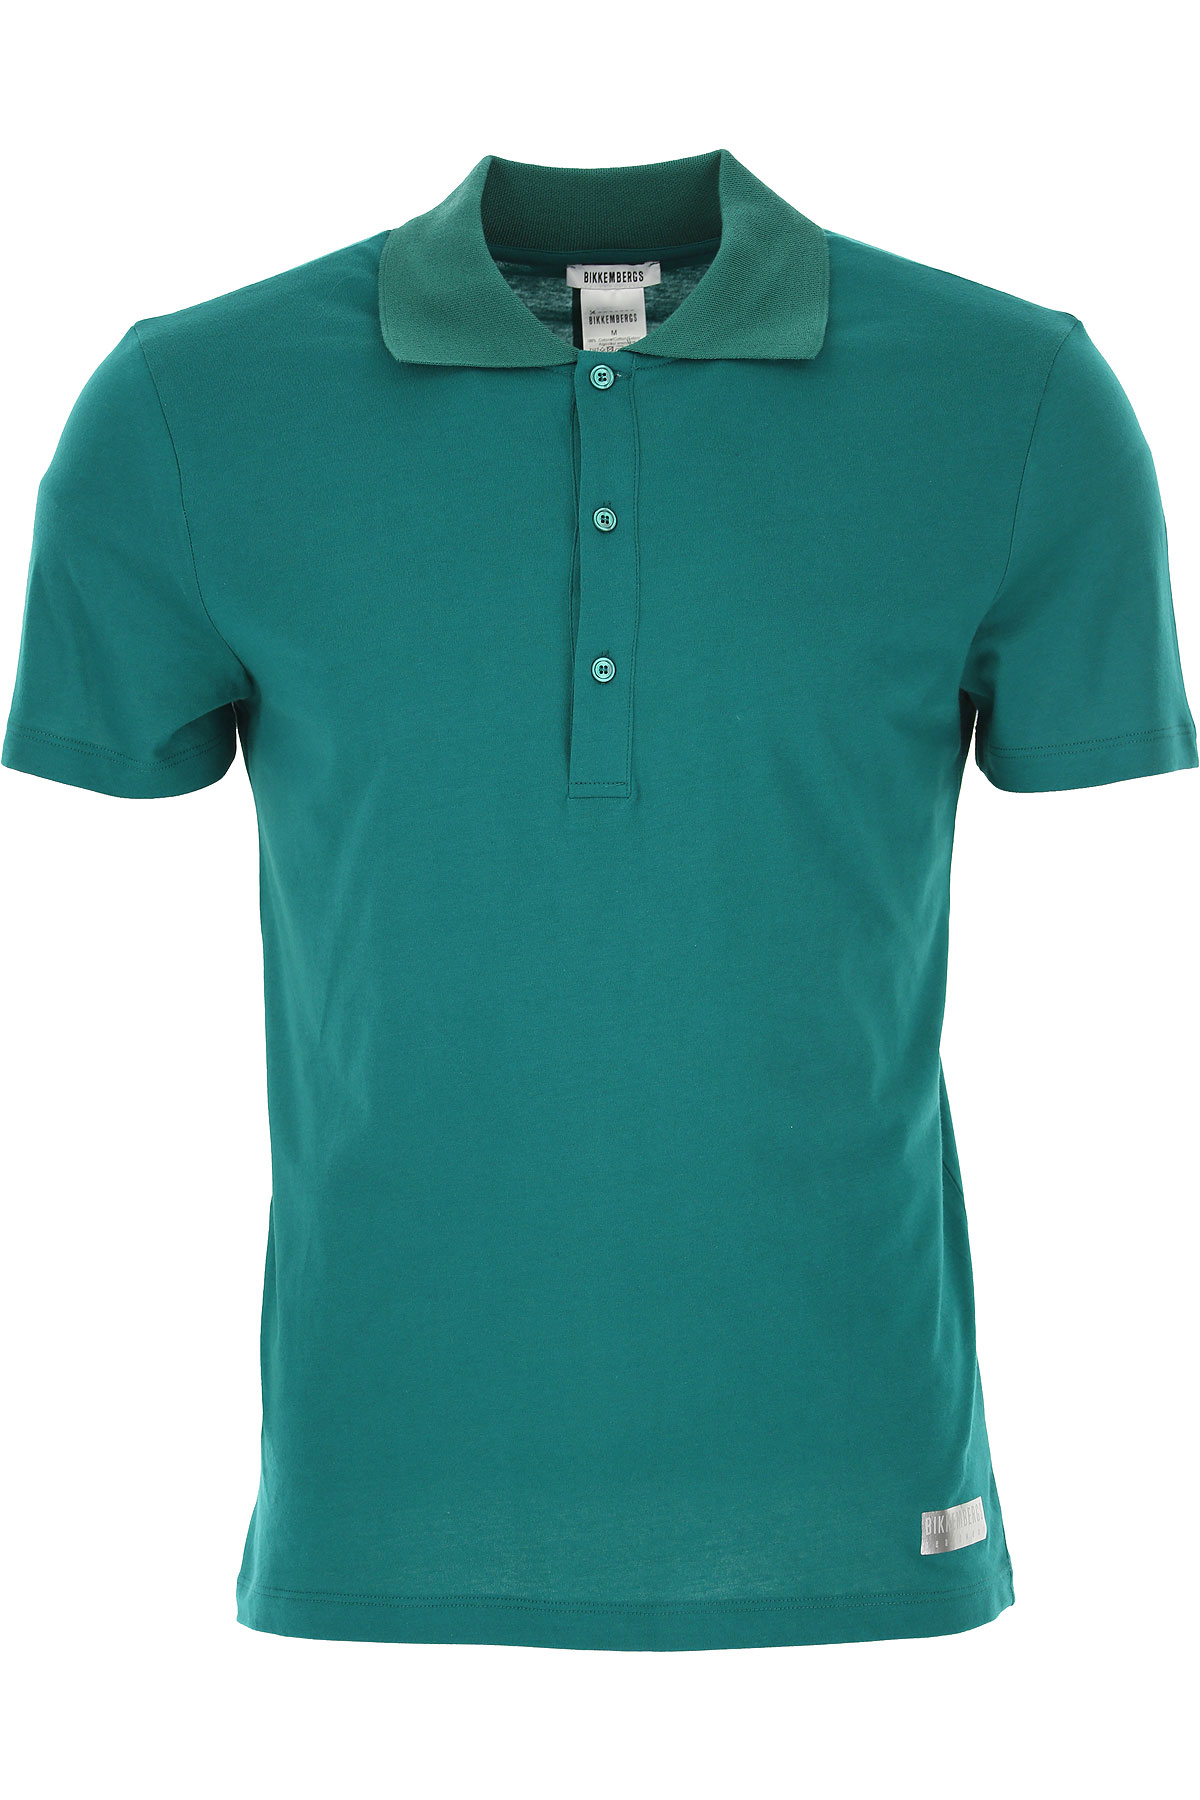 Dirk Bikkembergs Polo Shirt for Men On Sale in Outlet, Emerald, Cotton, 2019, S XL